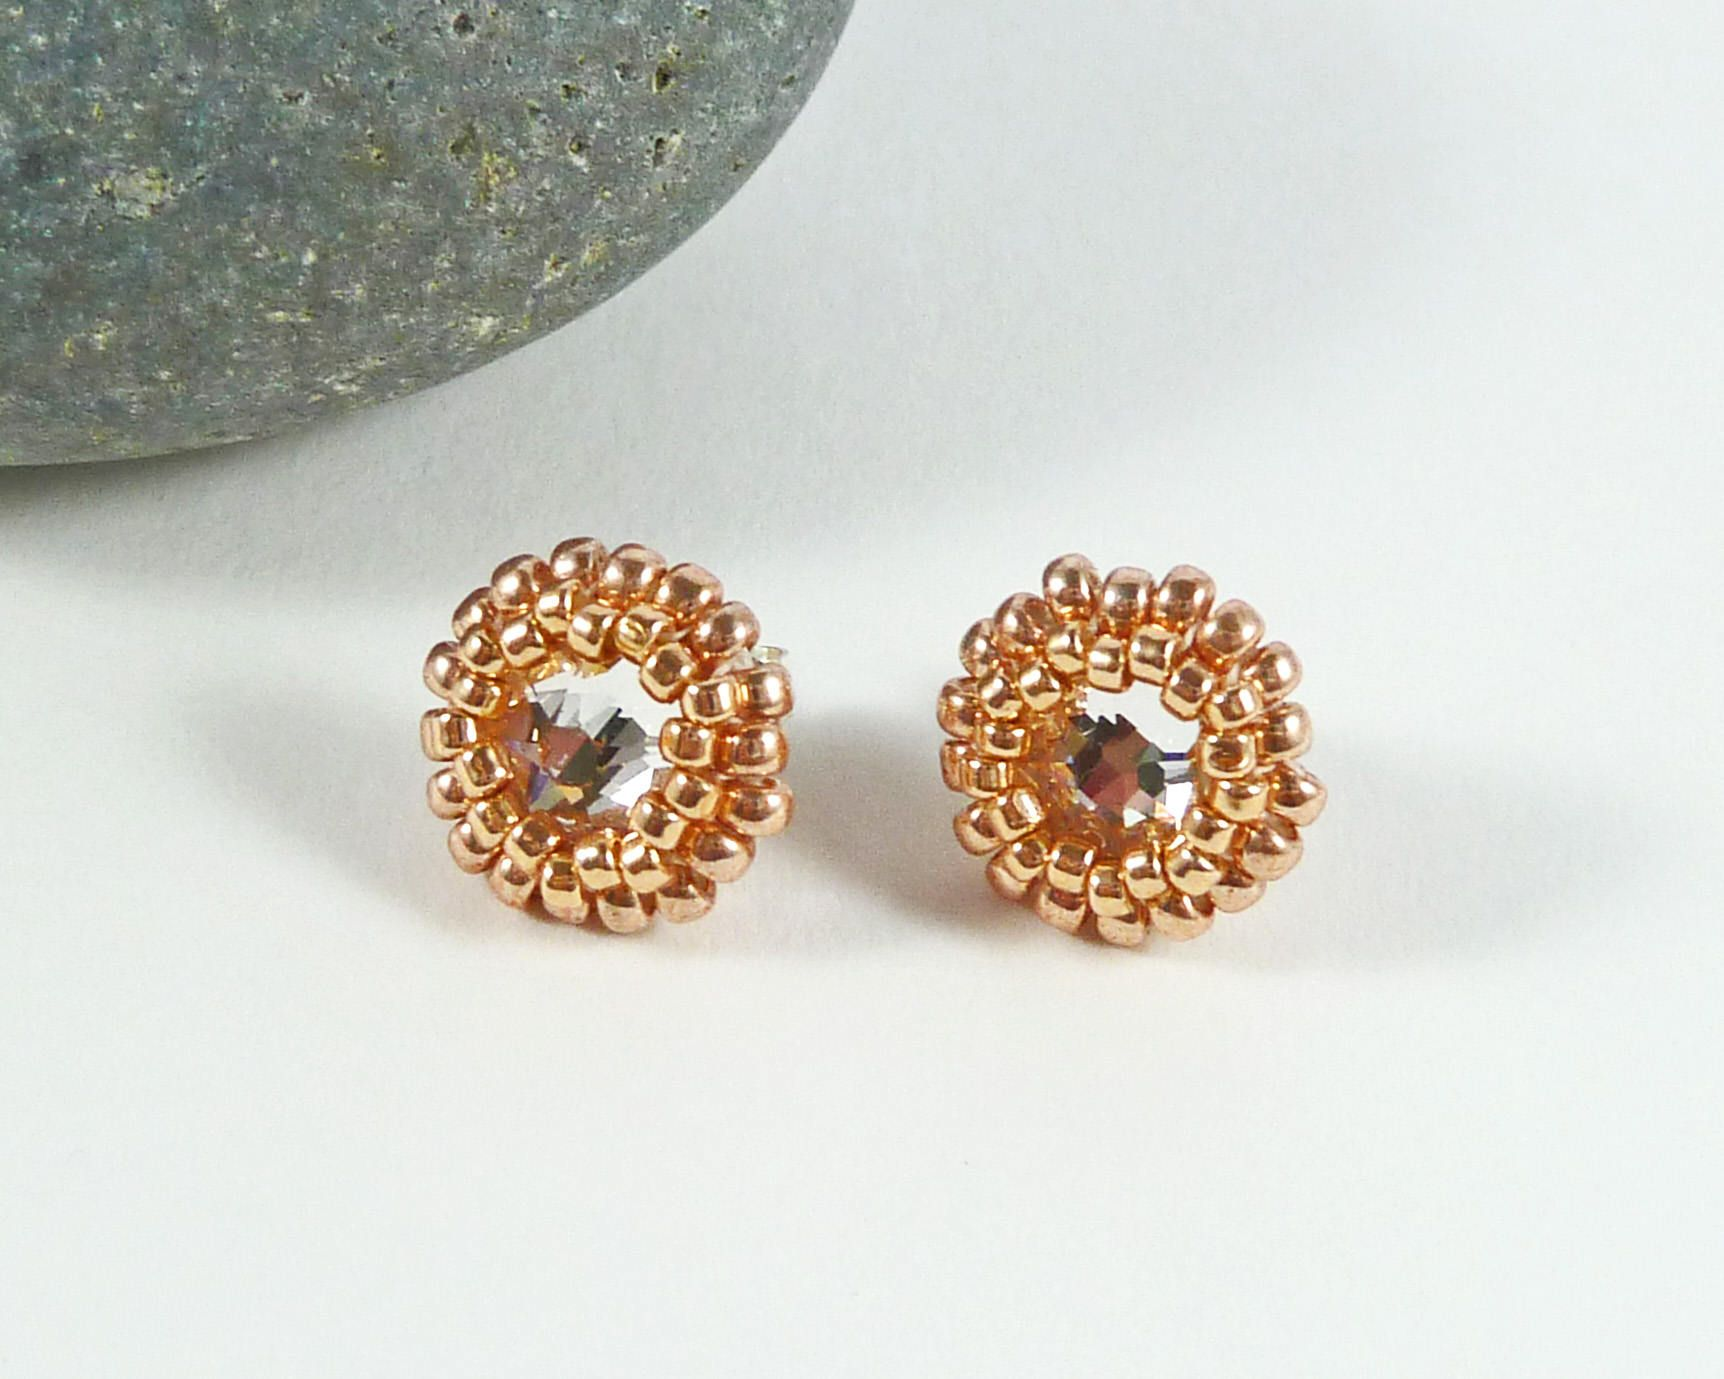 c0516c190 Crystal Stud Earrings, Rose Gold, Sterling Silver, Prom Jewelry, Wedding,  Bridal, Swarovski Crystal, Bridesmaid Gift, Sparkly, Bead Earrings by ...